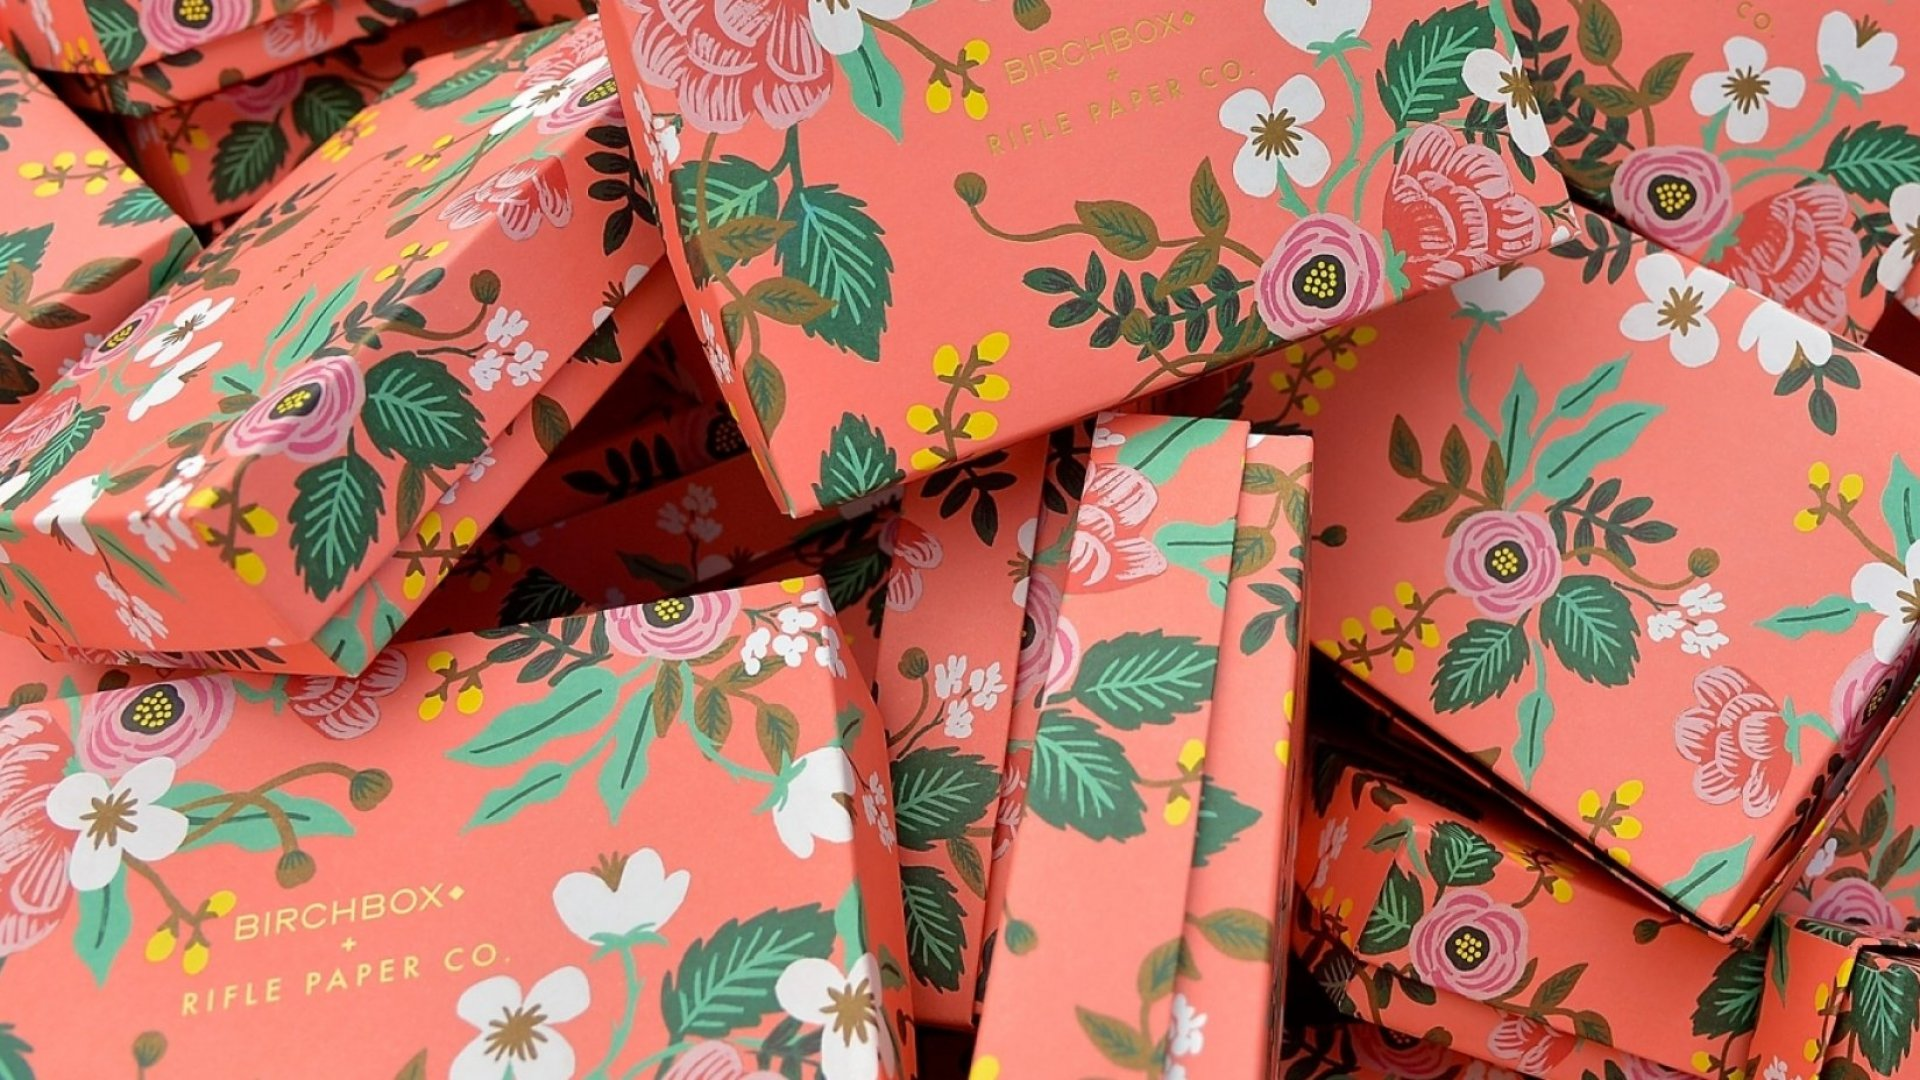 Birchbox Is Winning by Doing Something Every Startup Should Be Doing (but Isn't)